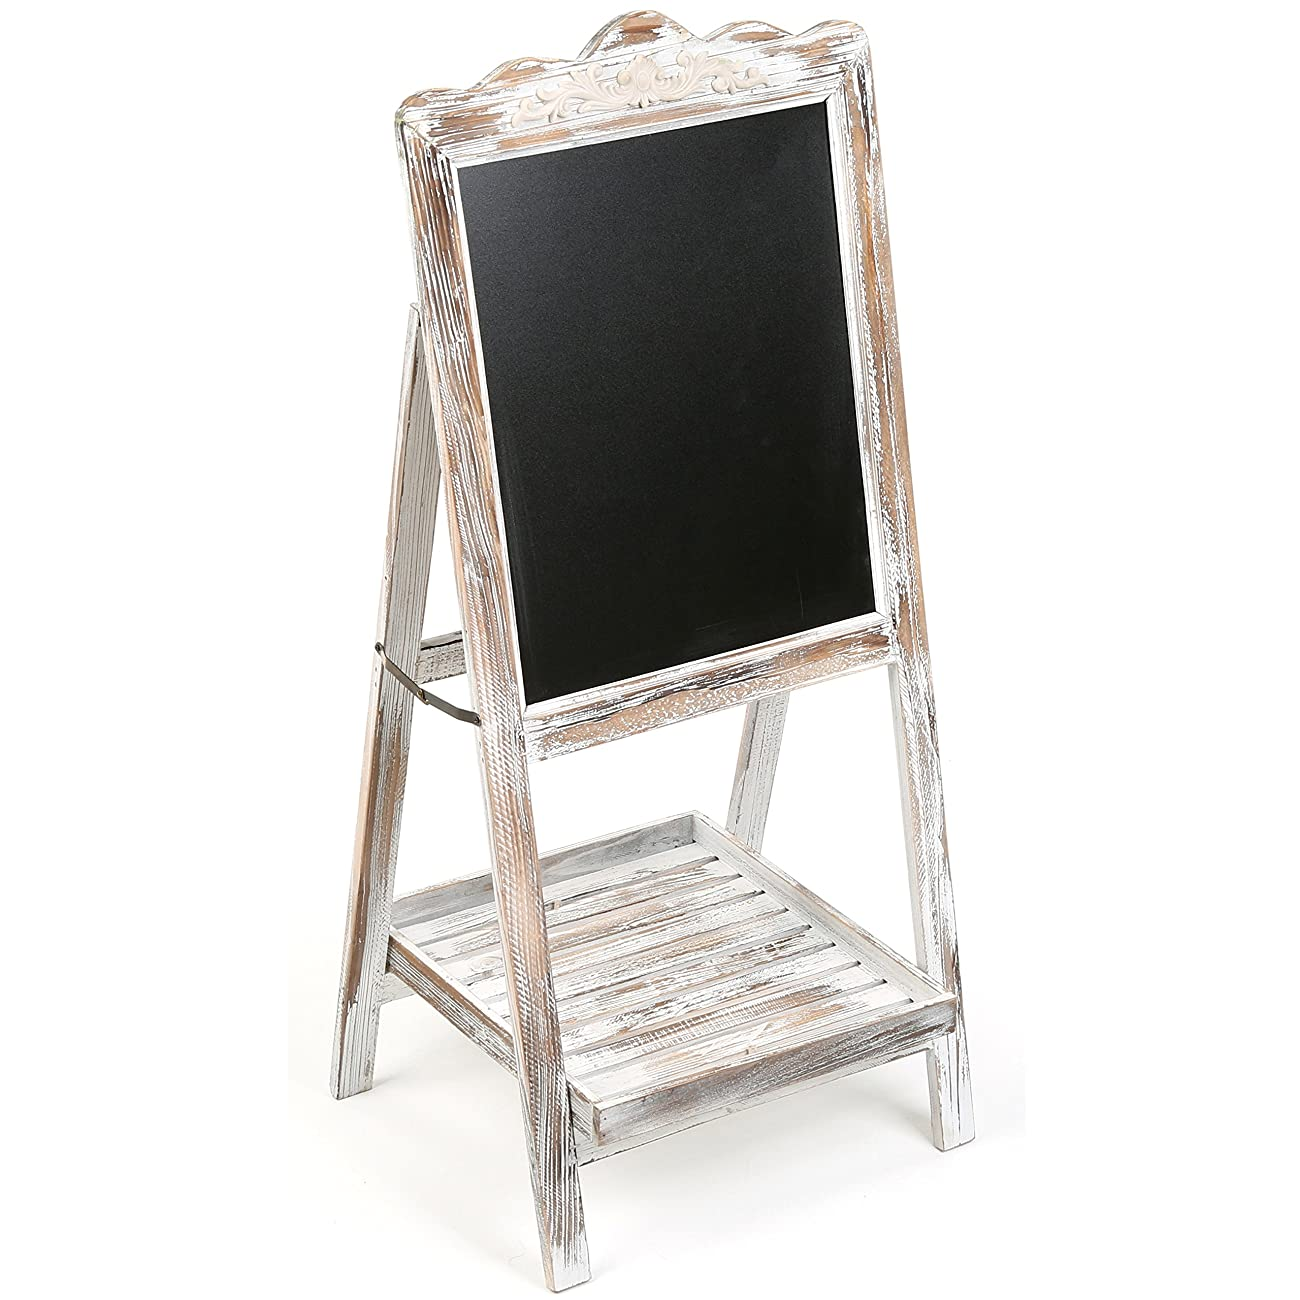 MyGift Vintage Style White Washed Brown Wood Chalk Board Easel / Freestanding Guest Message Sign Board 0